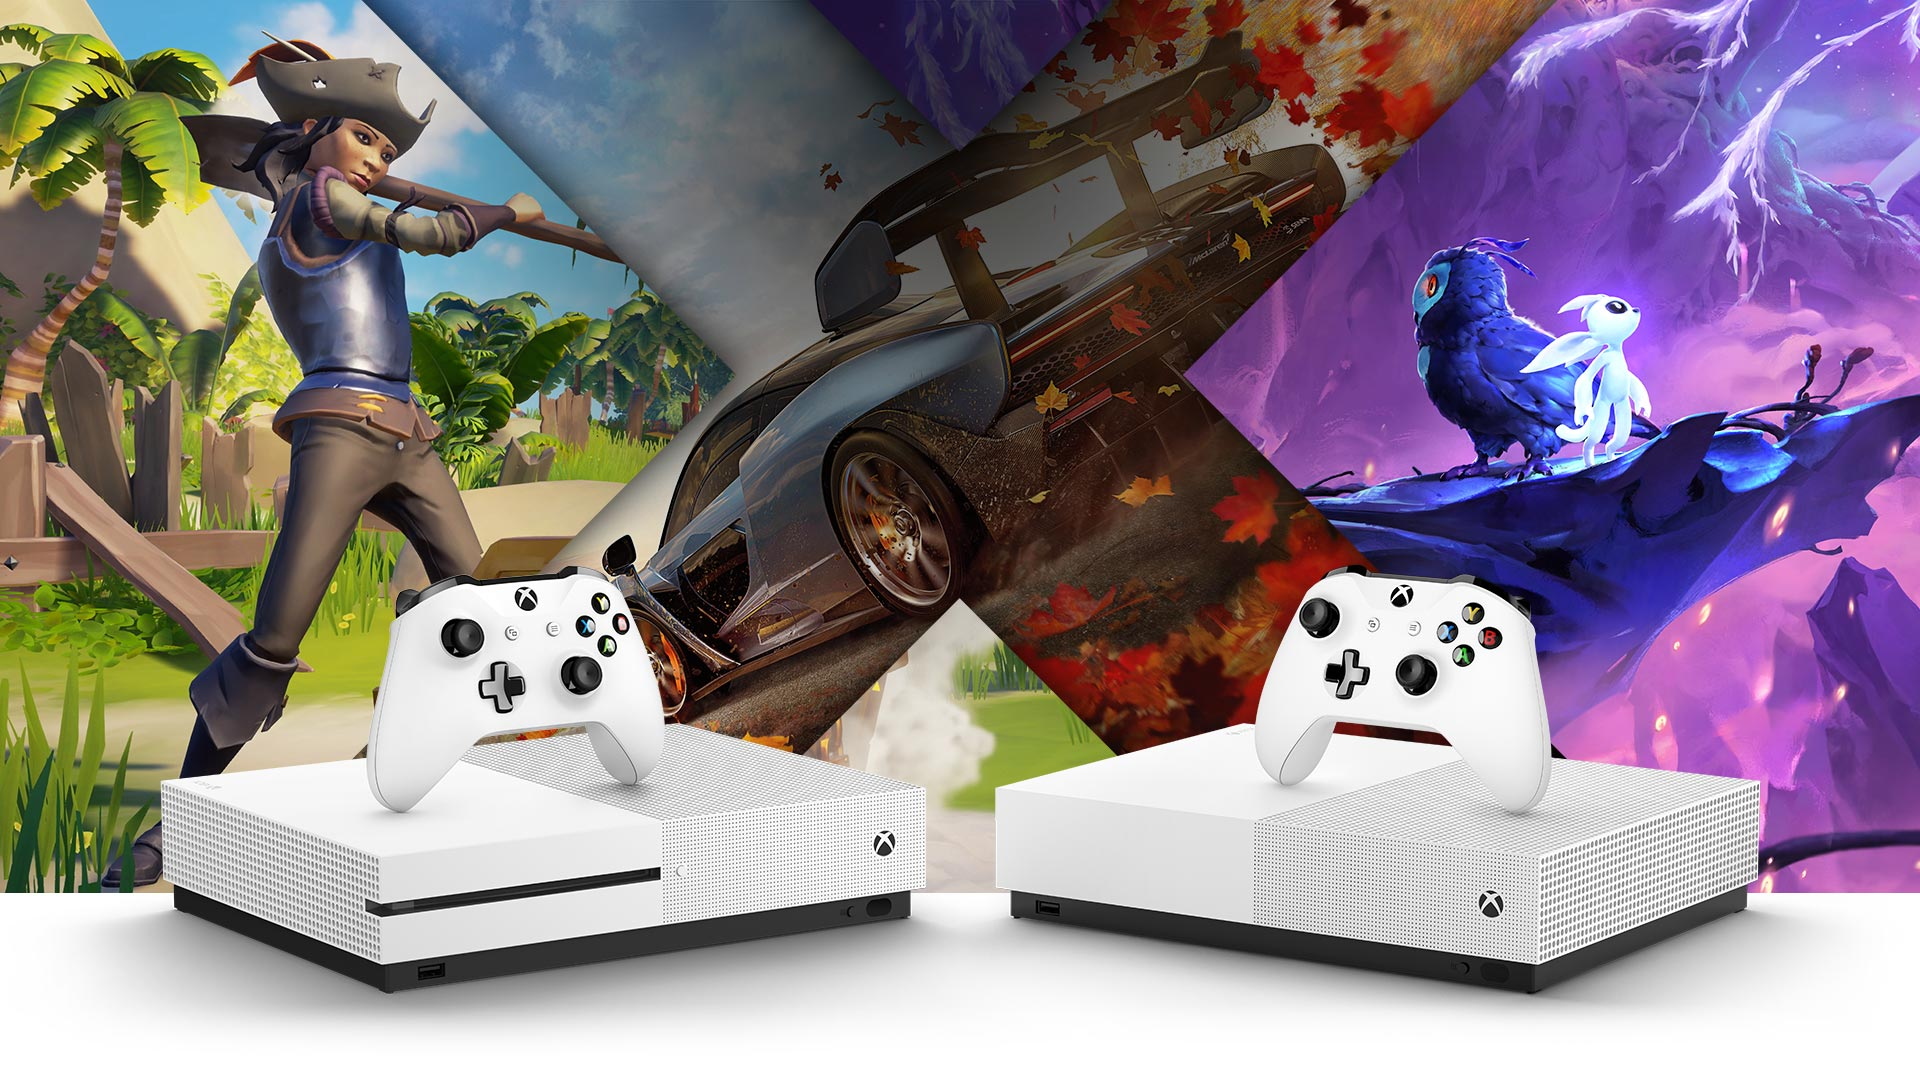 Vista anteriore delle console Xbox One S e Xbox One S All Digital Edition circondate dalle immagini di Sea of Thieves, Forza Horizon 4, Ori and the Will of Wisps